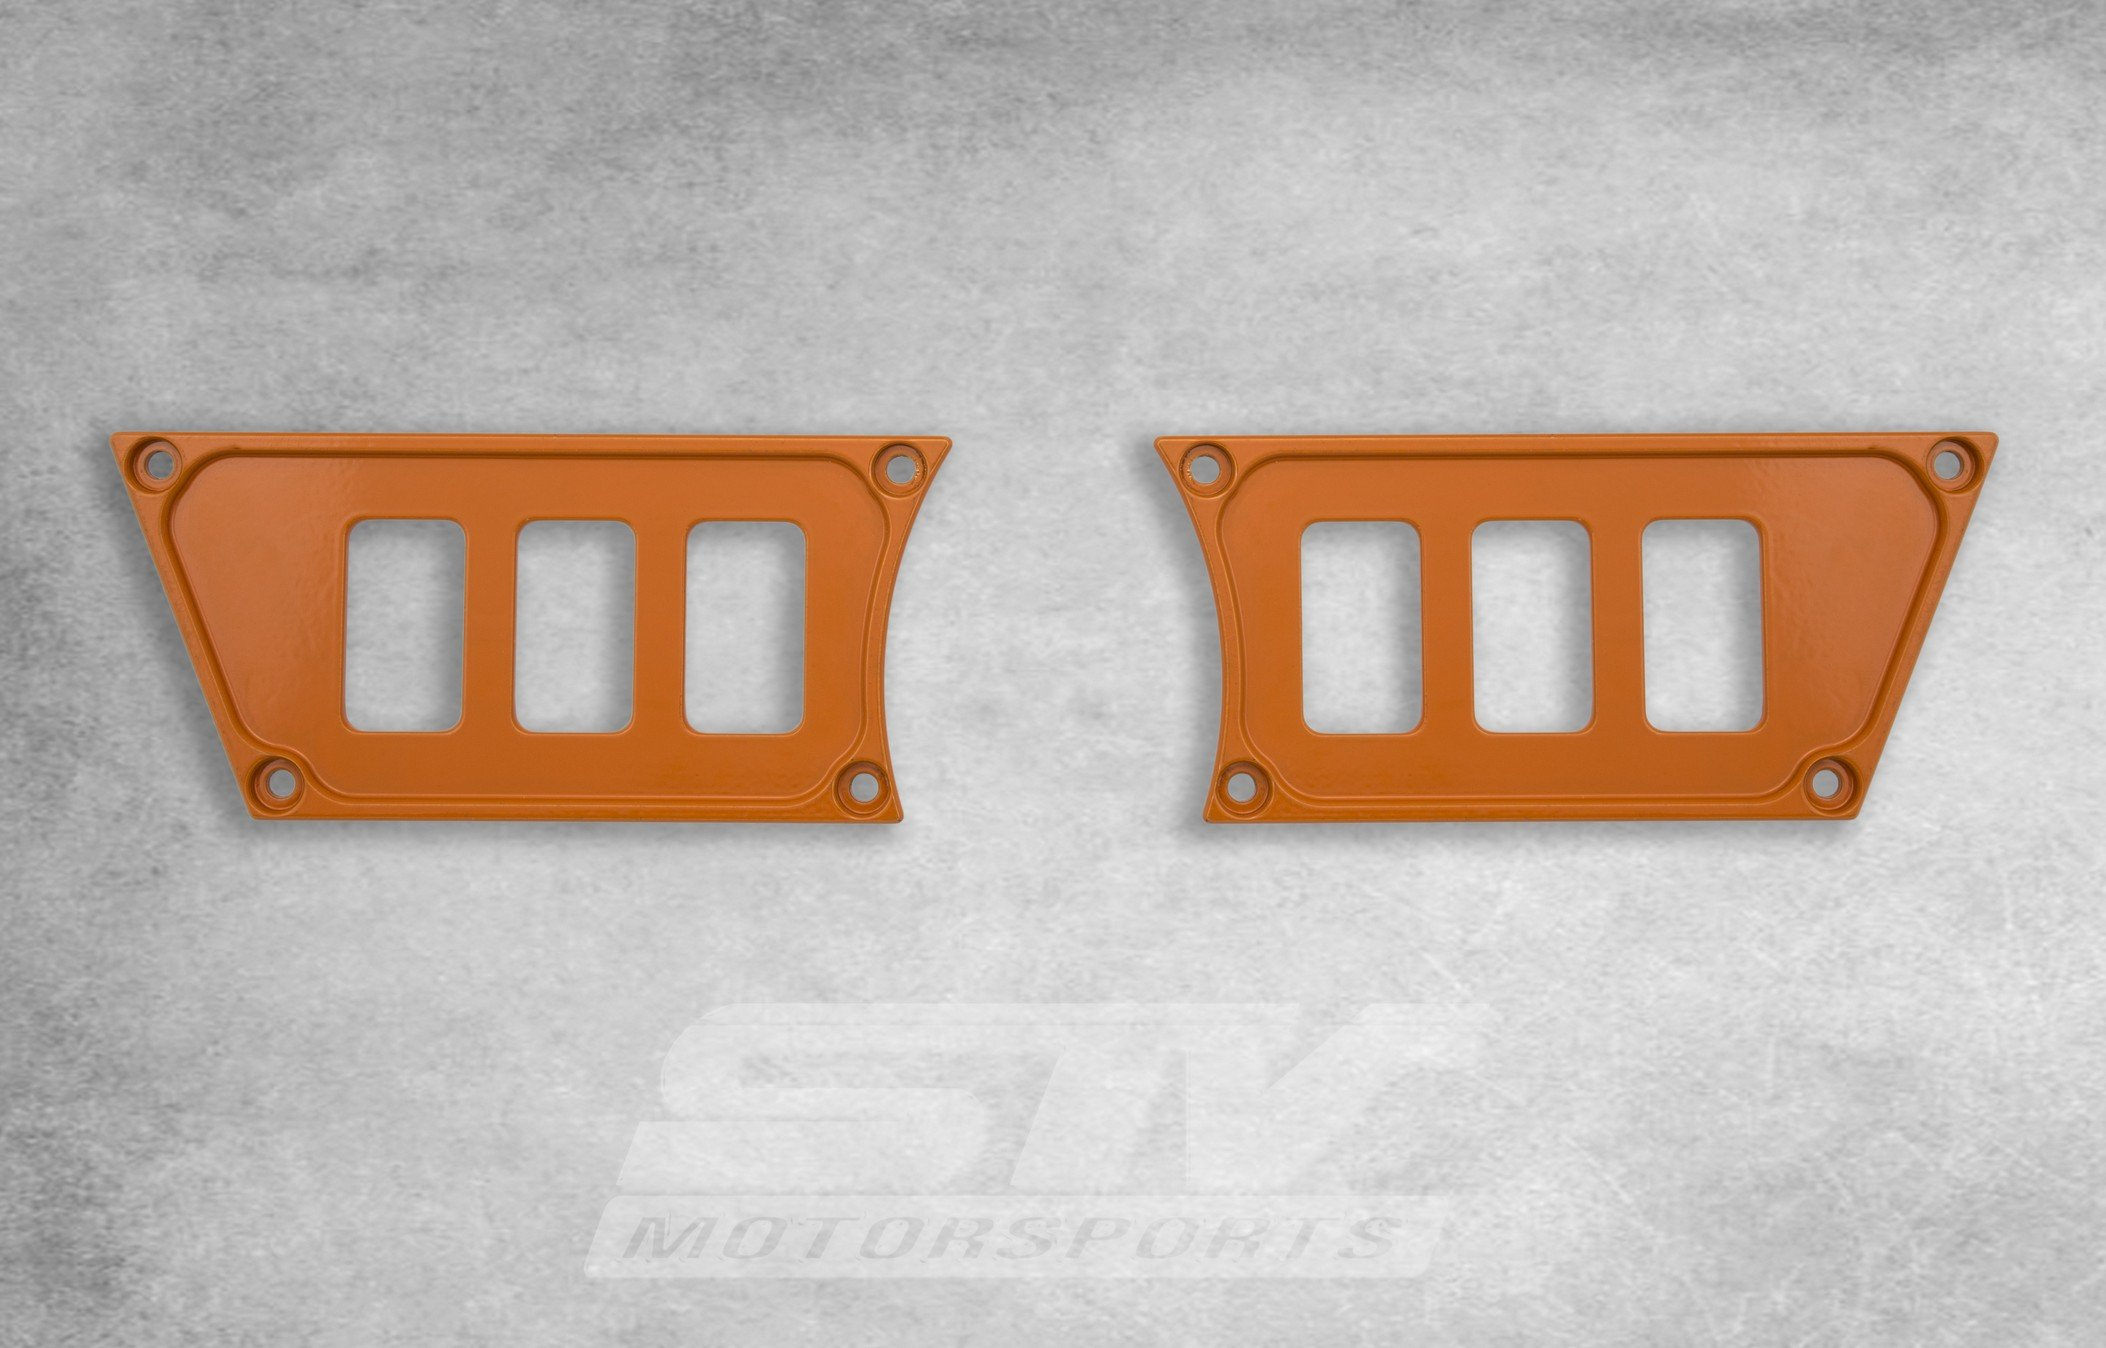 STV Motorsports Custom Orange Aluminum Dash Panel for POLARIS RZR XP 1000 with 6 switch openings – MADE 100% in USA (no switches included)